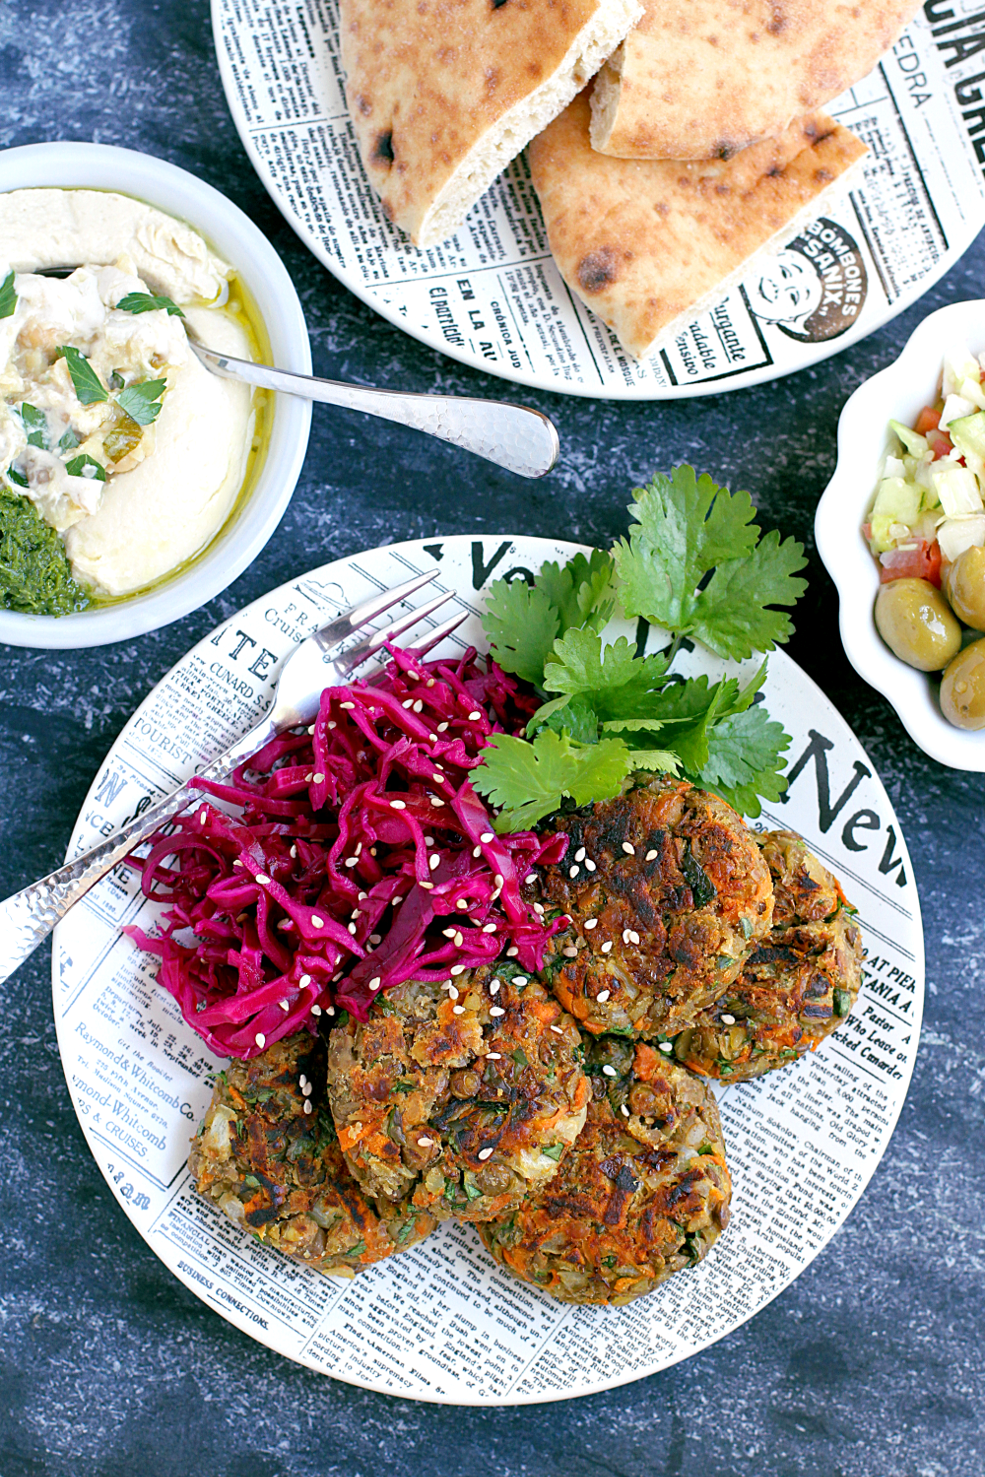 Image of lentil patties with pickled cabbage.